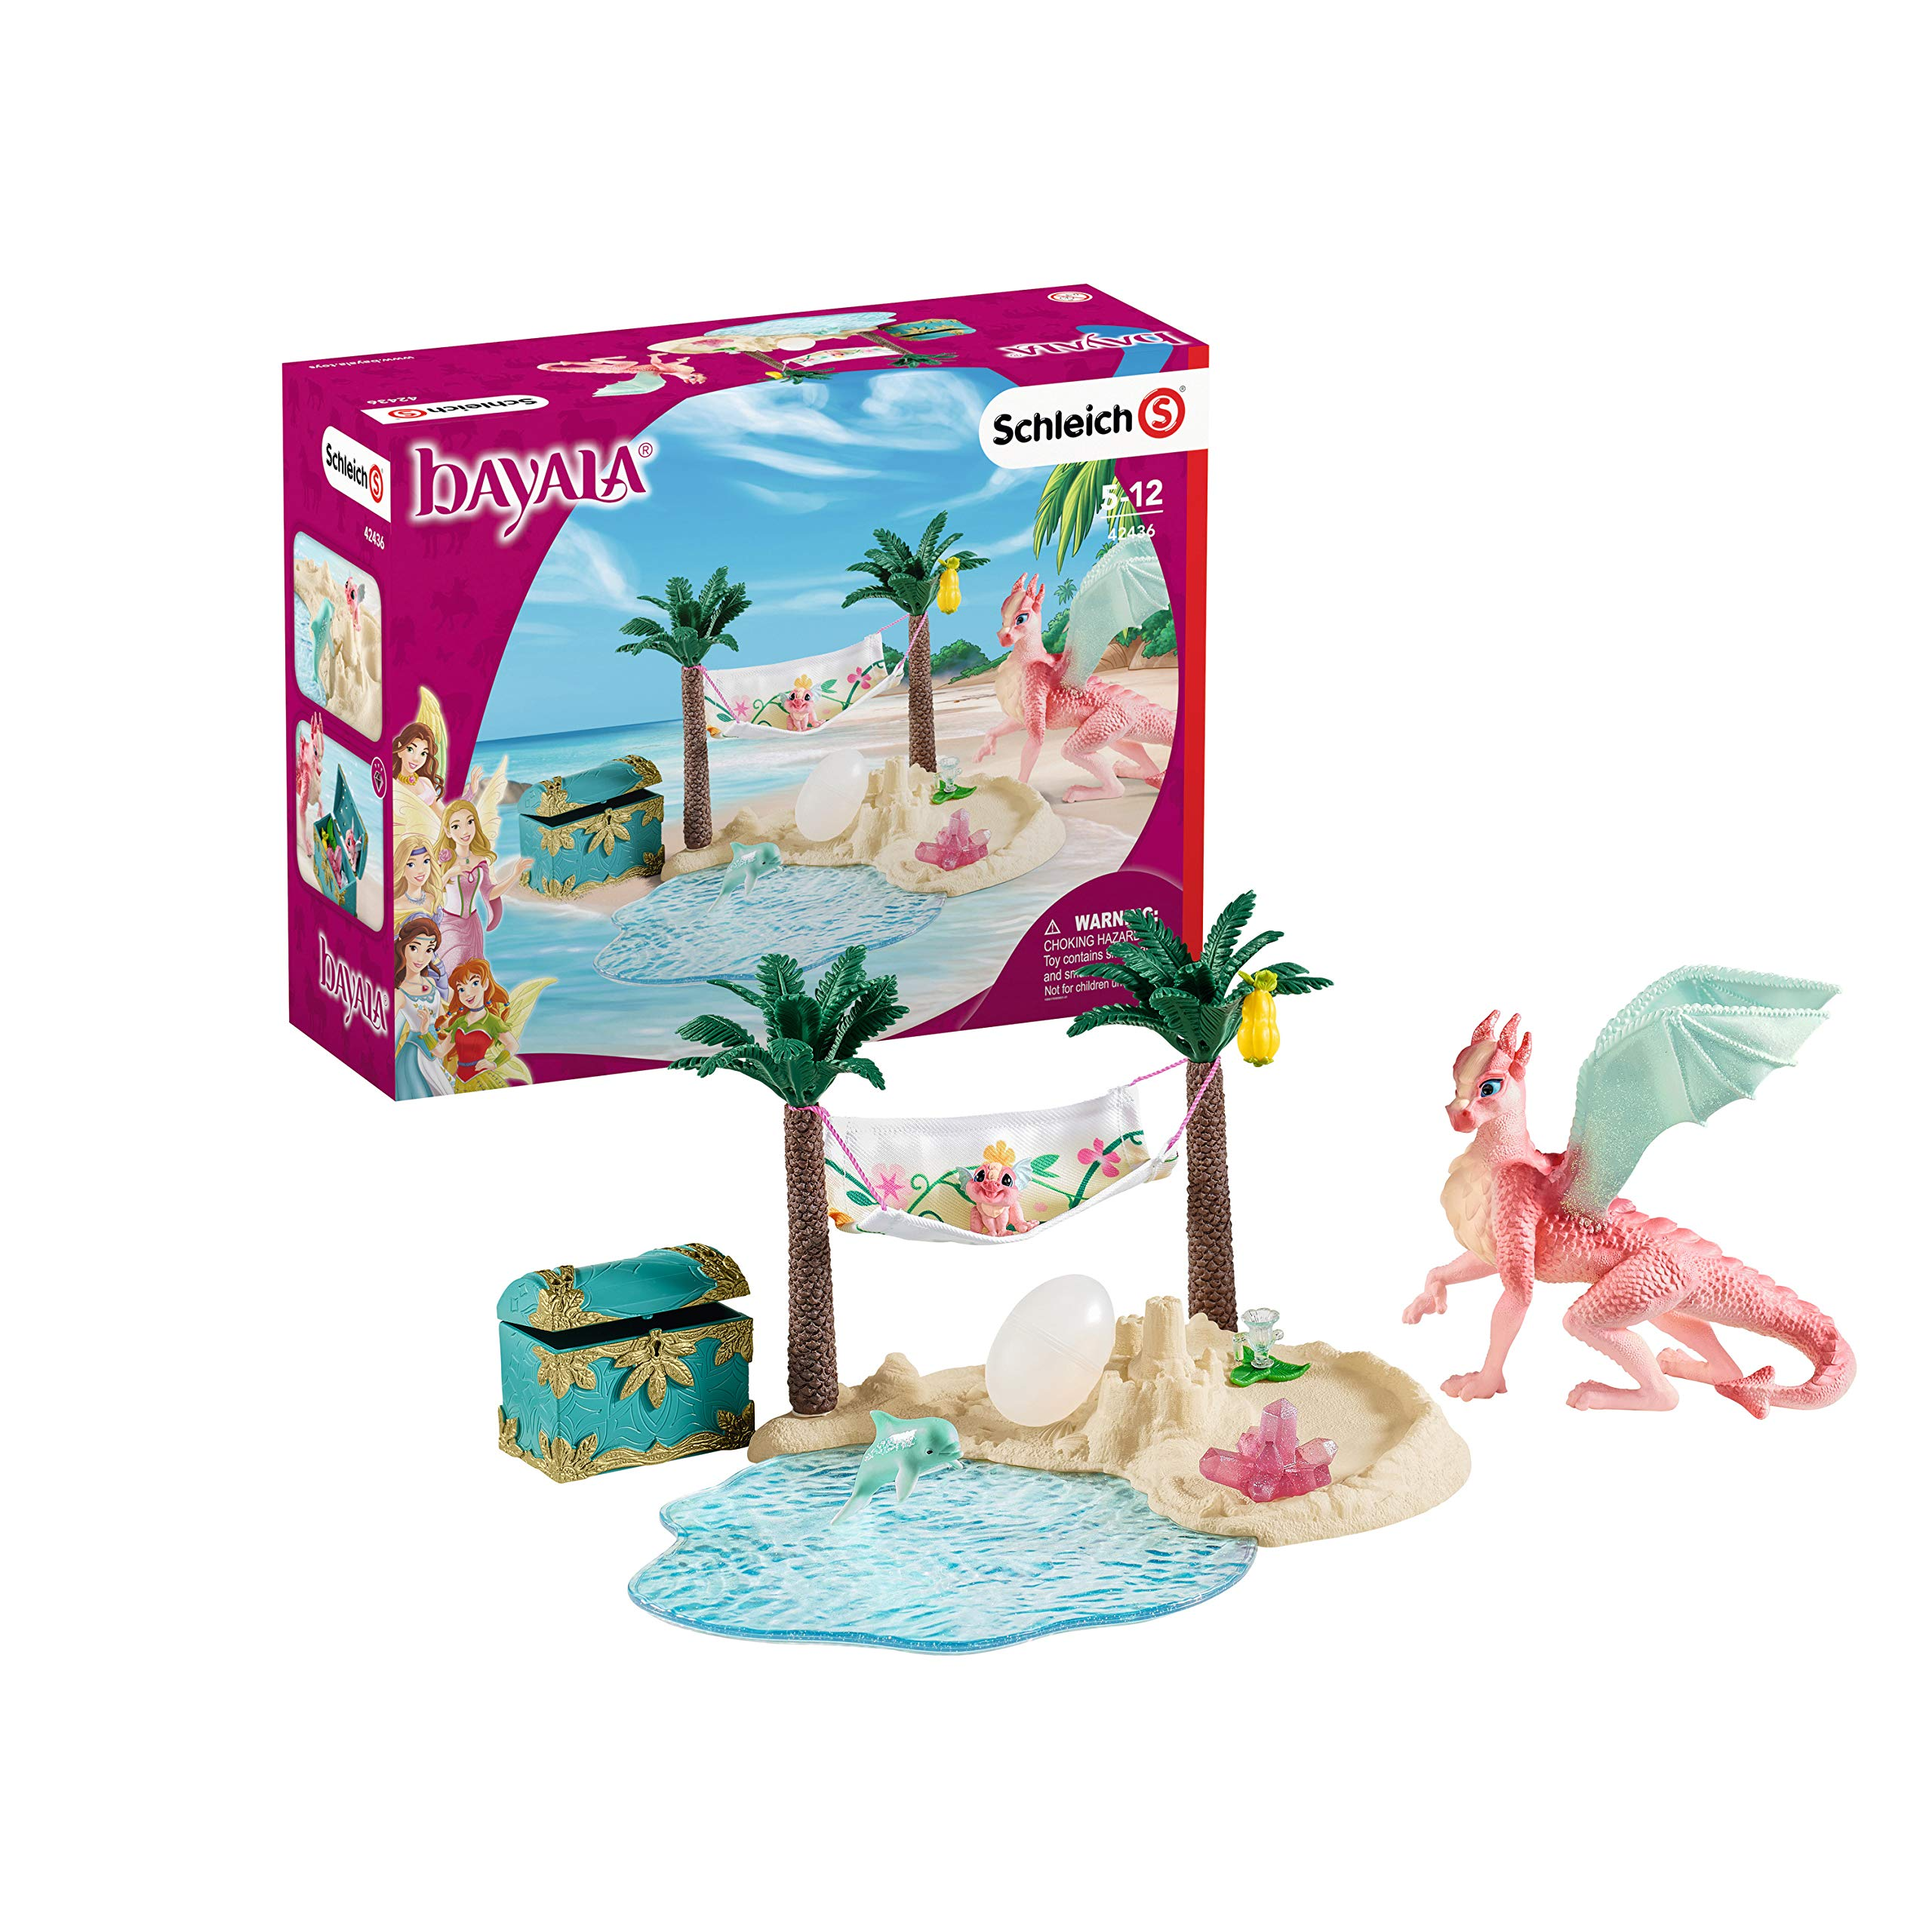 Schleich bayala Dragon Island with Treasure 14-piece Imaginative Playset for Kids Ages 5-12